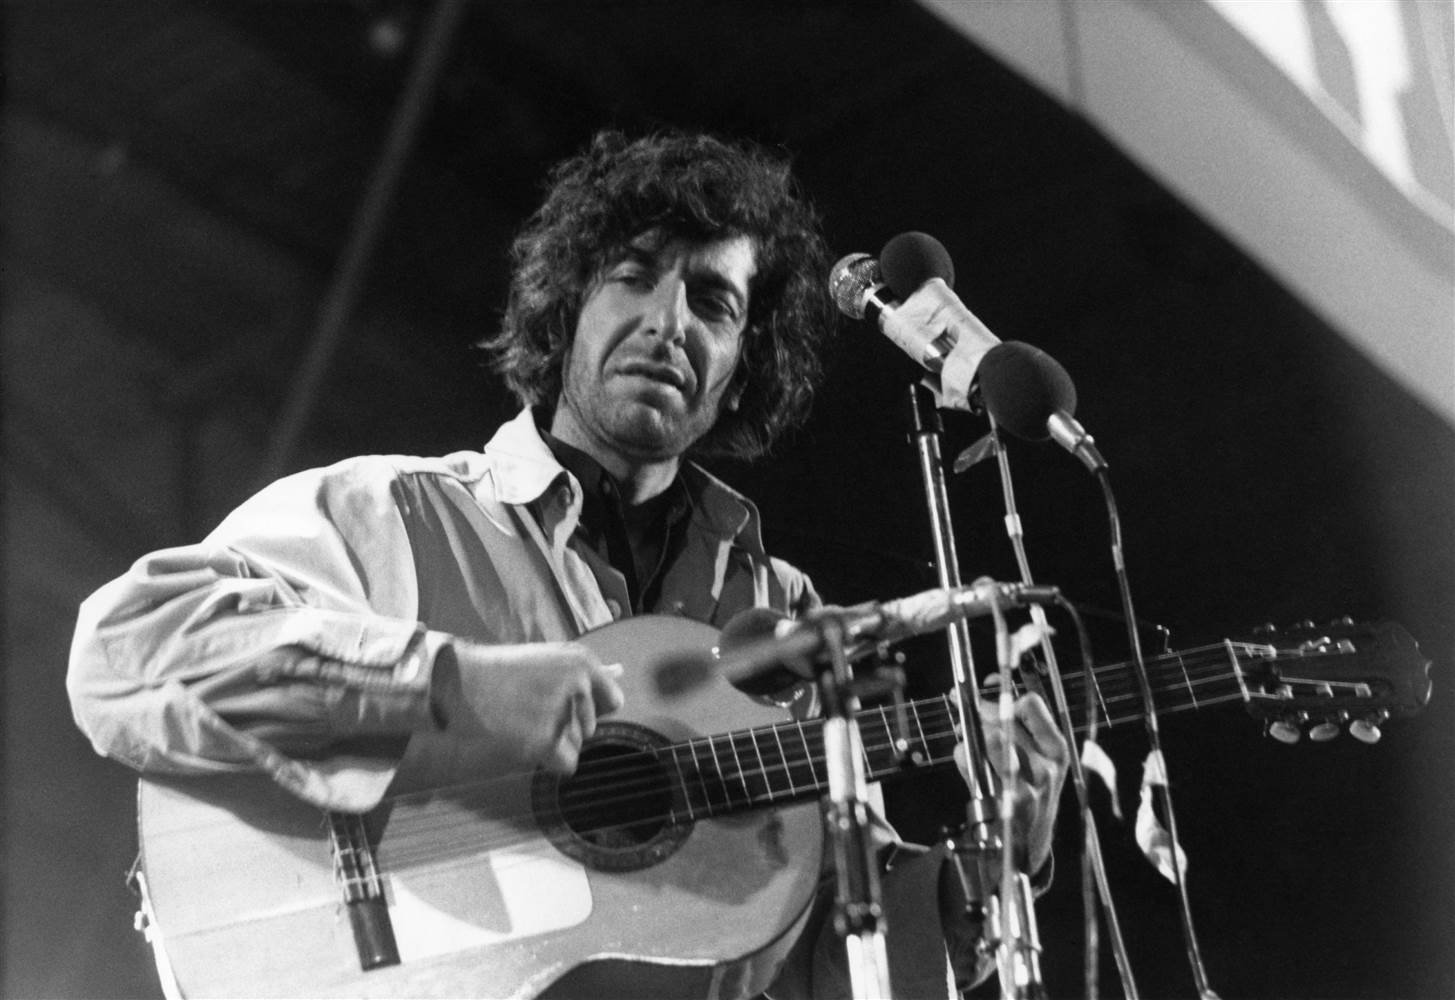 Canadian singer Leonard Cohen performs on stage at the Isle of Wight Festival on Aug. 30, 1970. Tony Russell / Getty Images